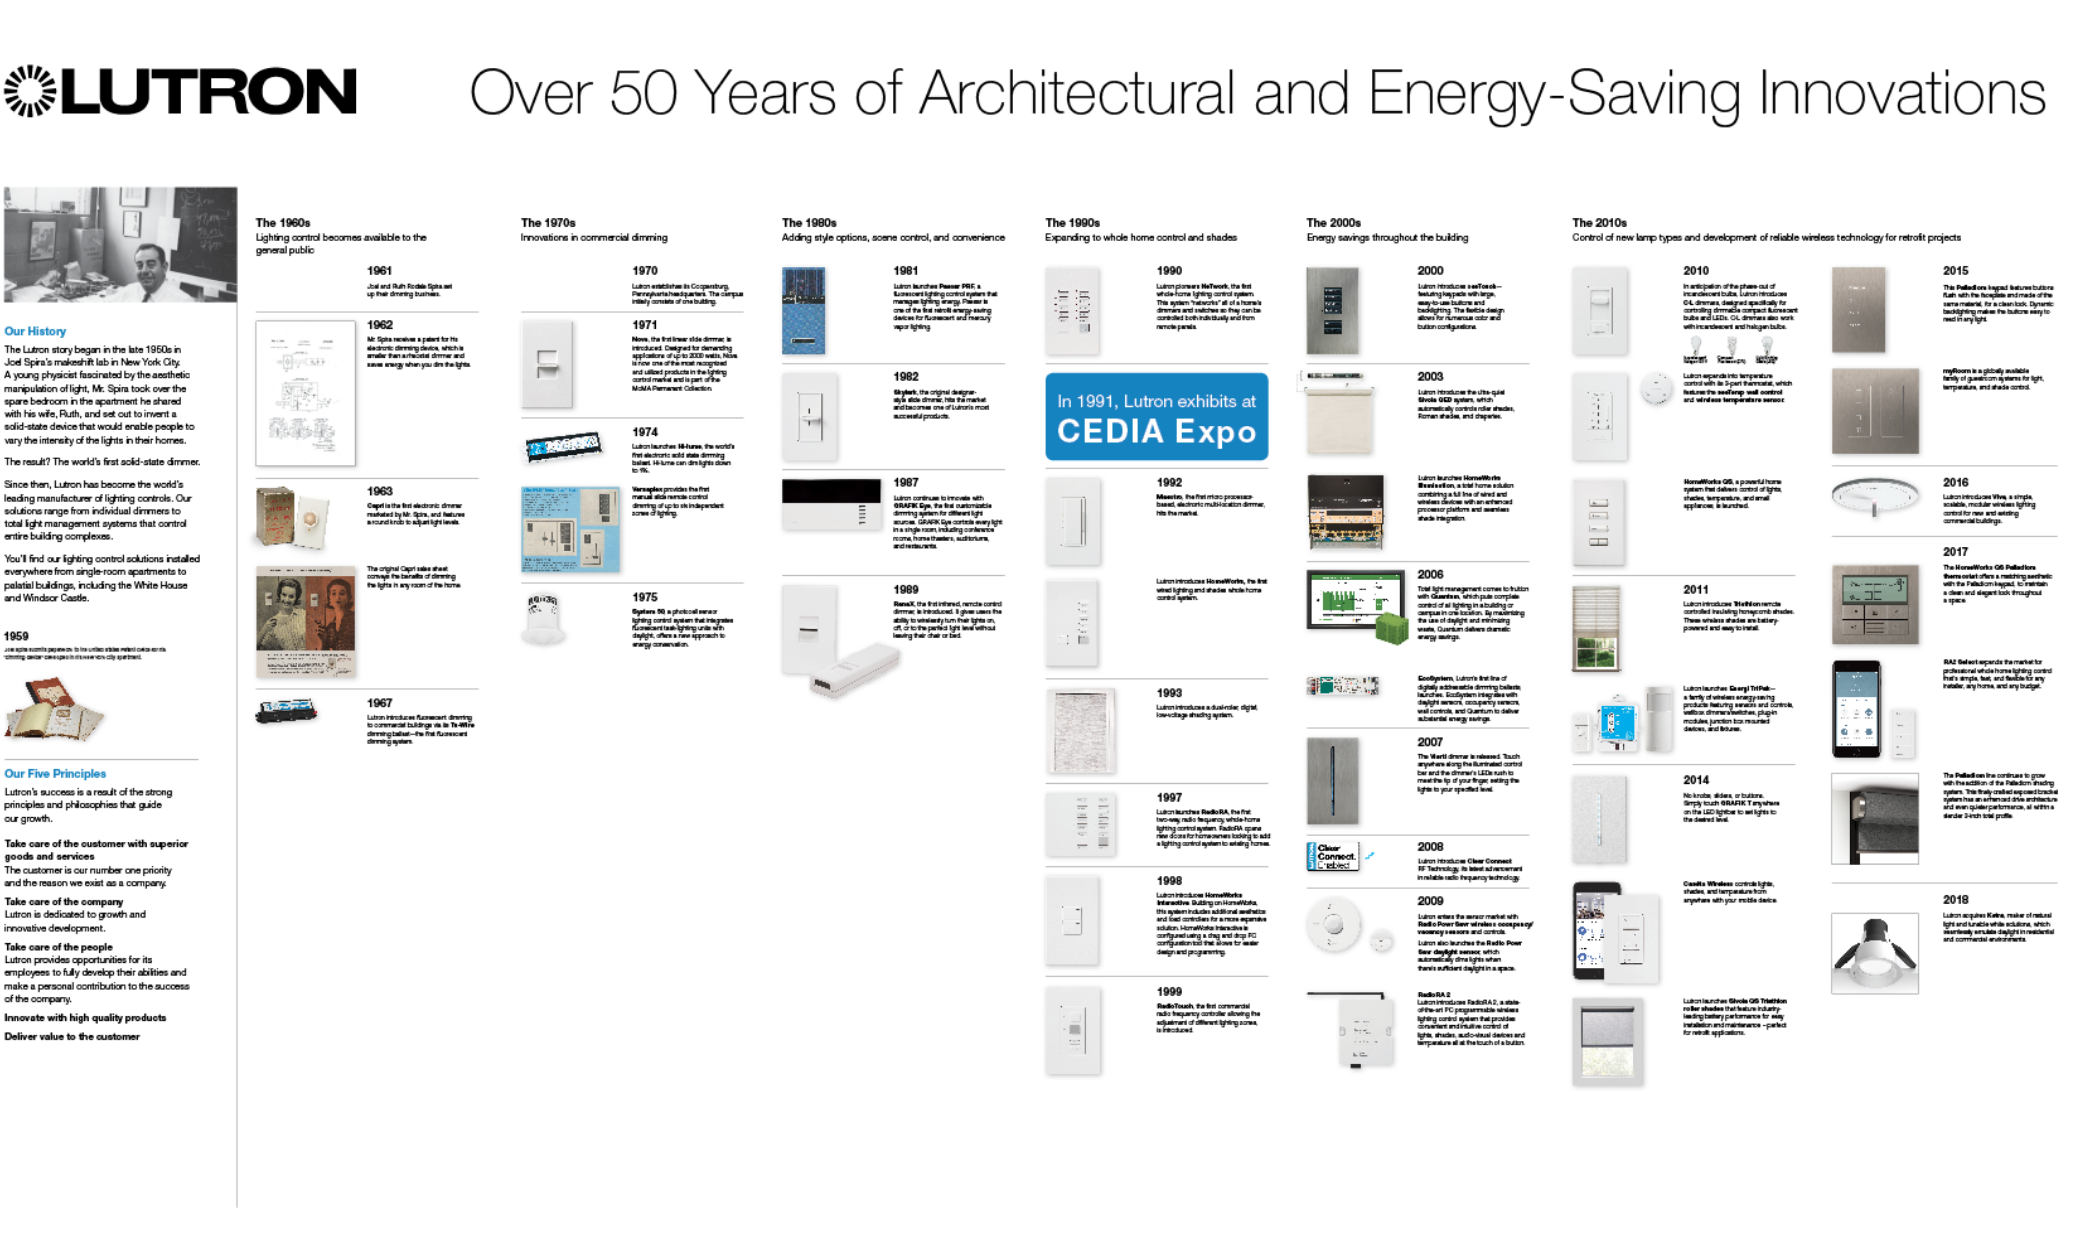 Over 50 Years of Architectual and Energy-Saving Innovations